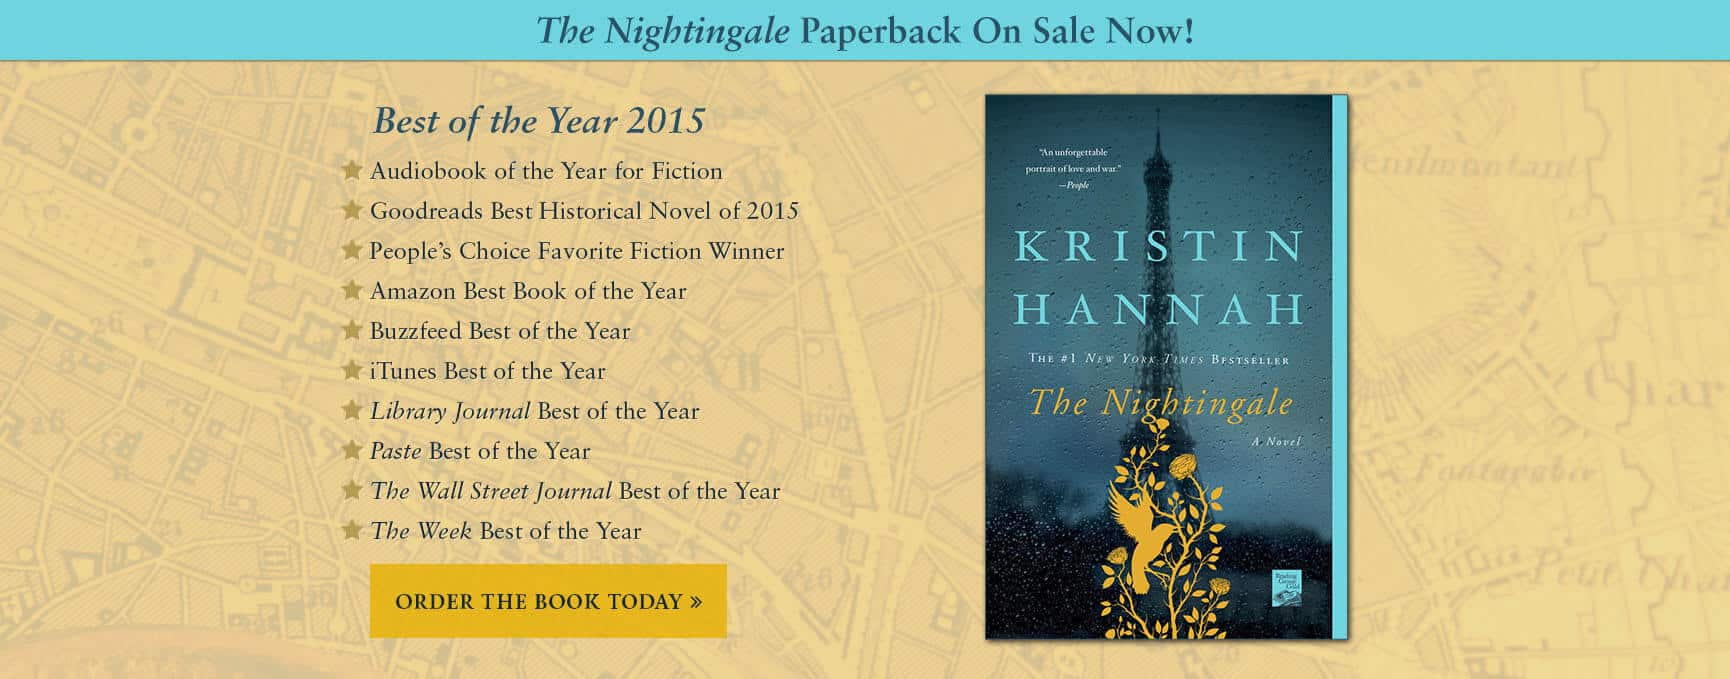 Best of the Year 2015 - Now in Paperback!